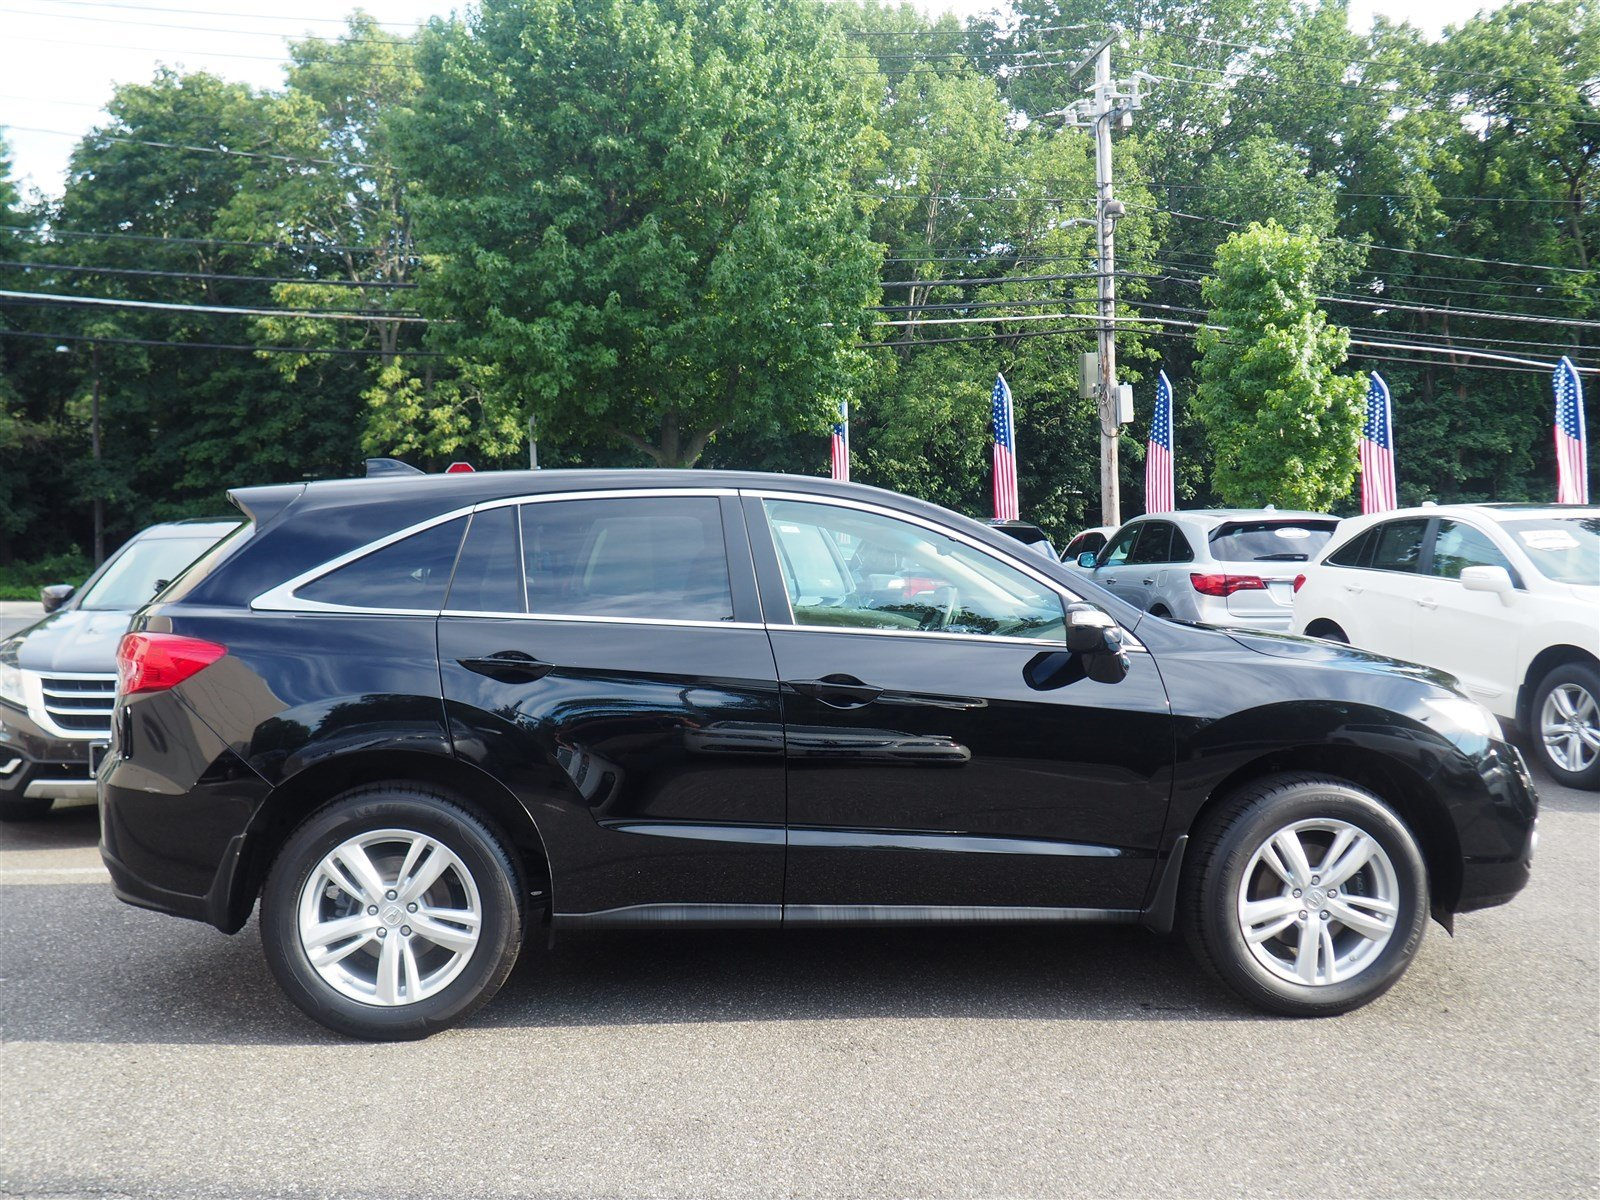 bl motors rdx sport southern pre used inventory utility savannah package fwd owned technology in acura